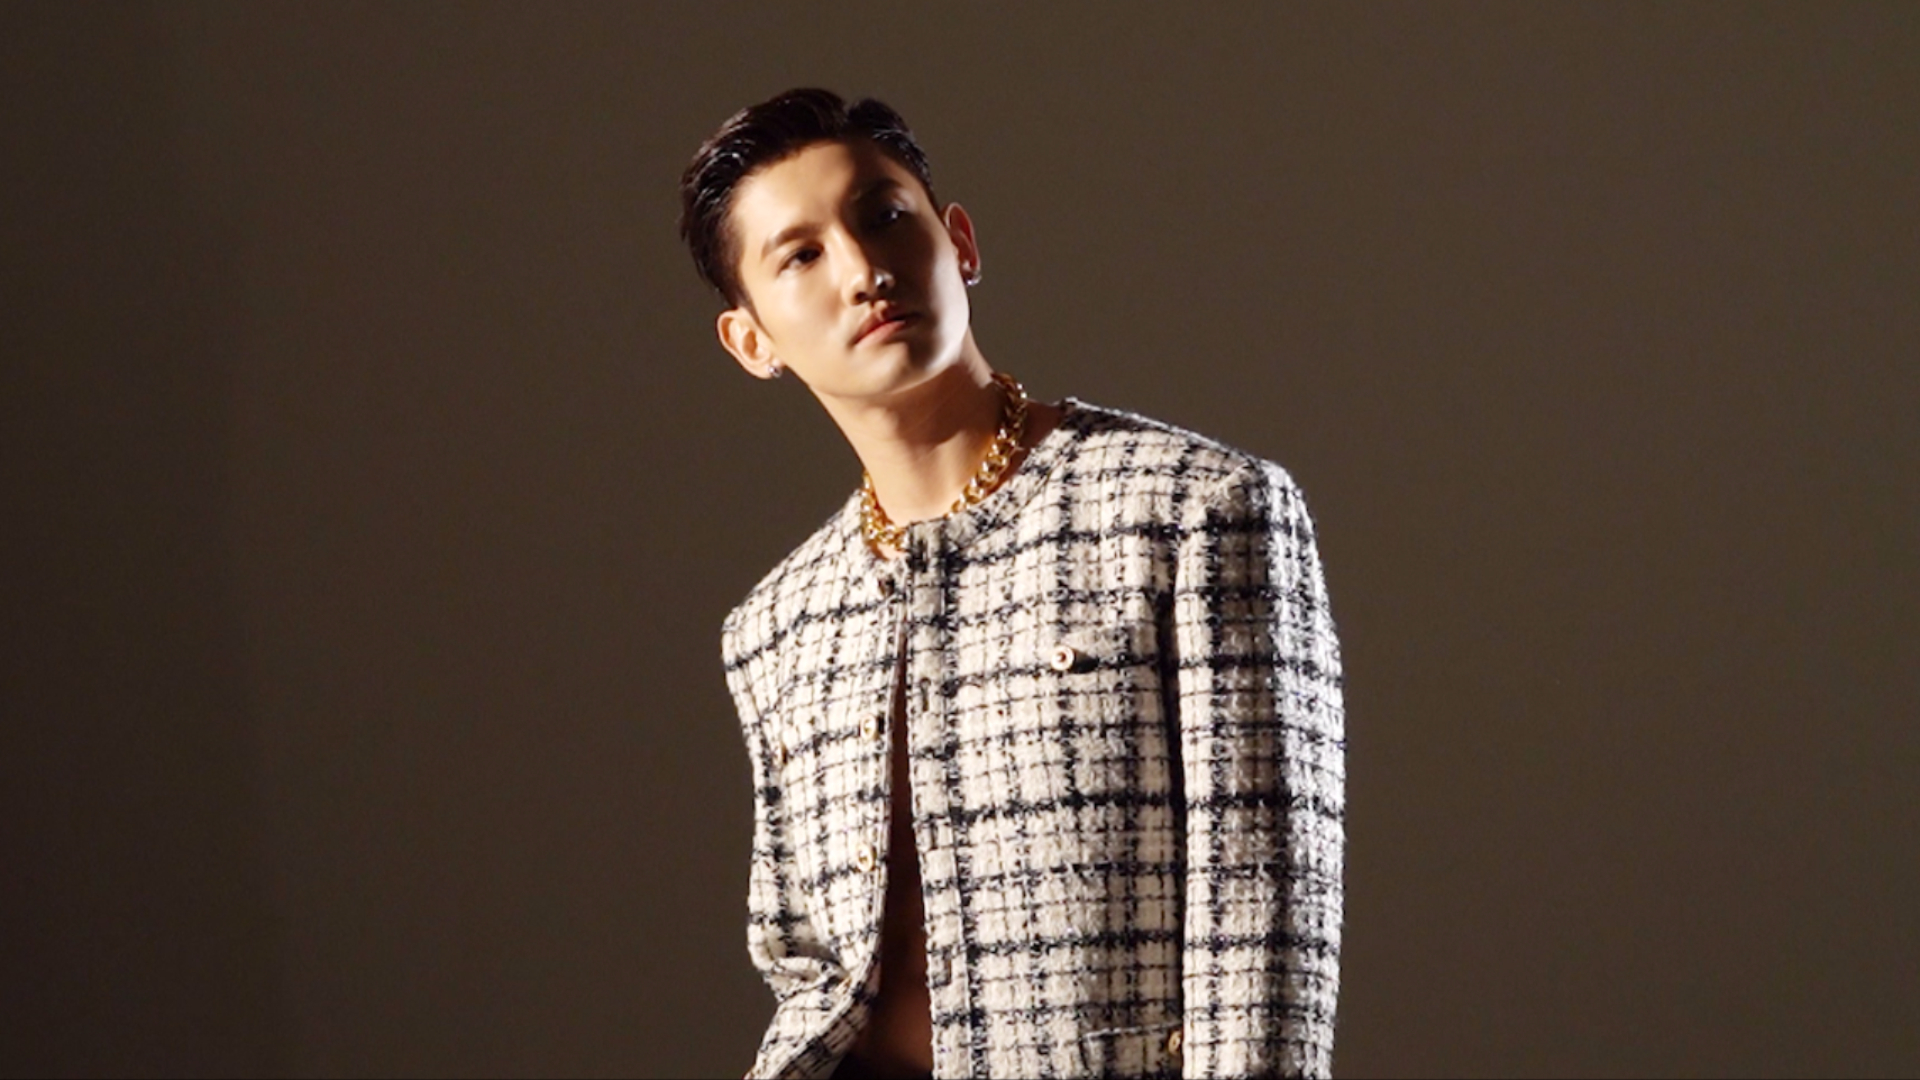 MAX CHAGMIN 최강창민 'Chocolate' MV & Jacket Making Film